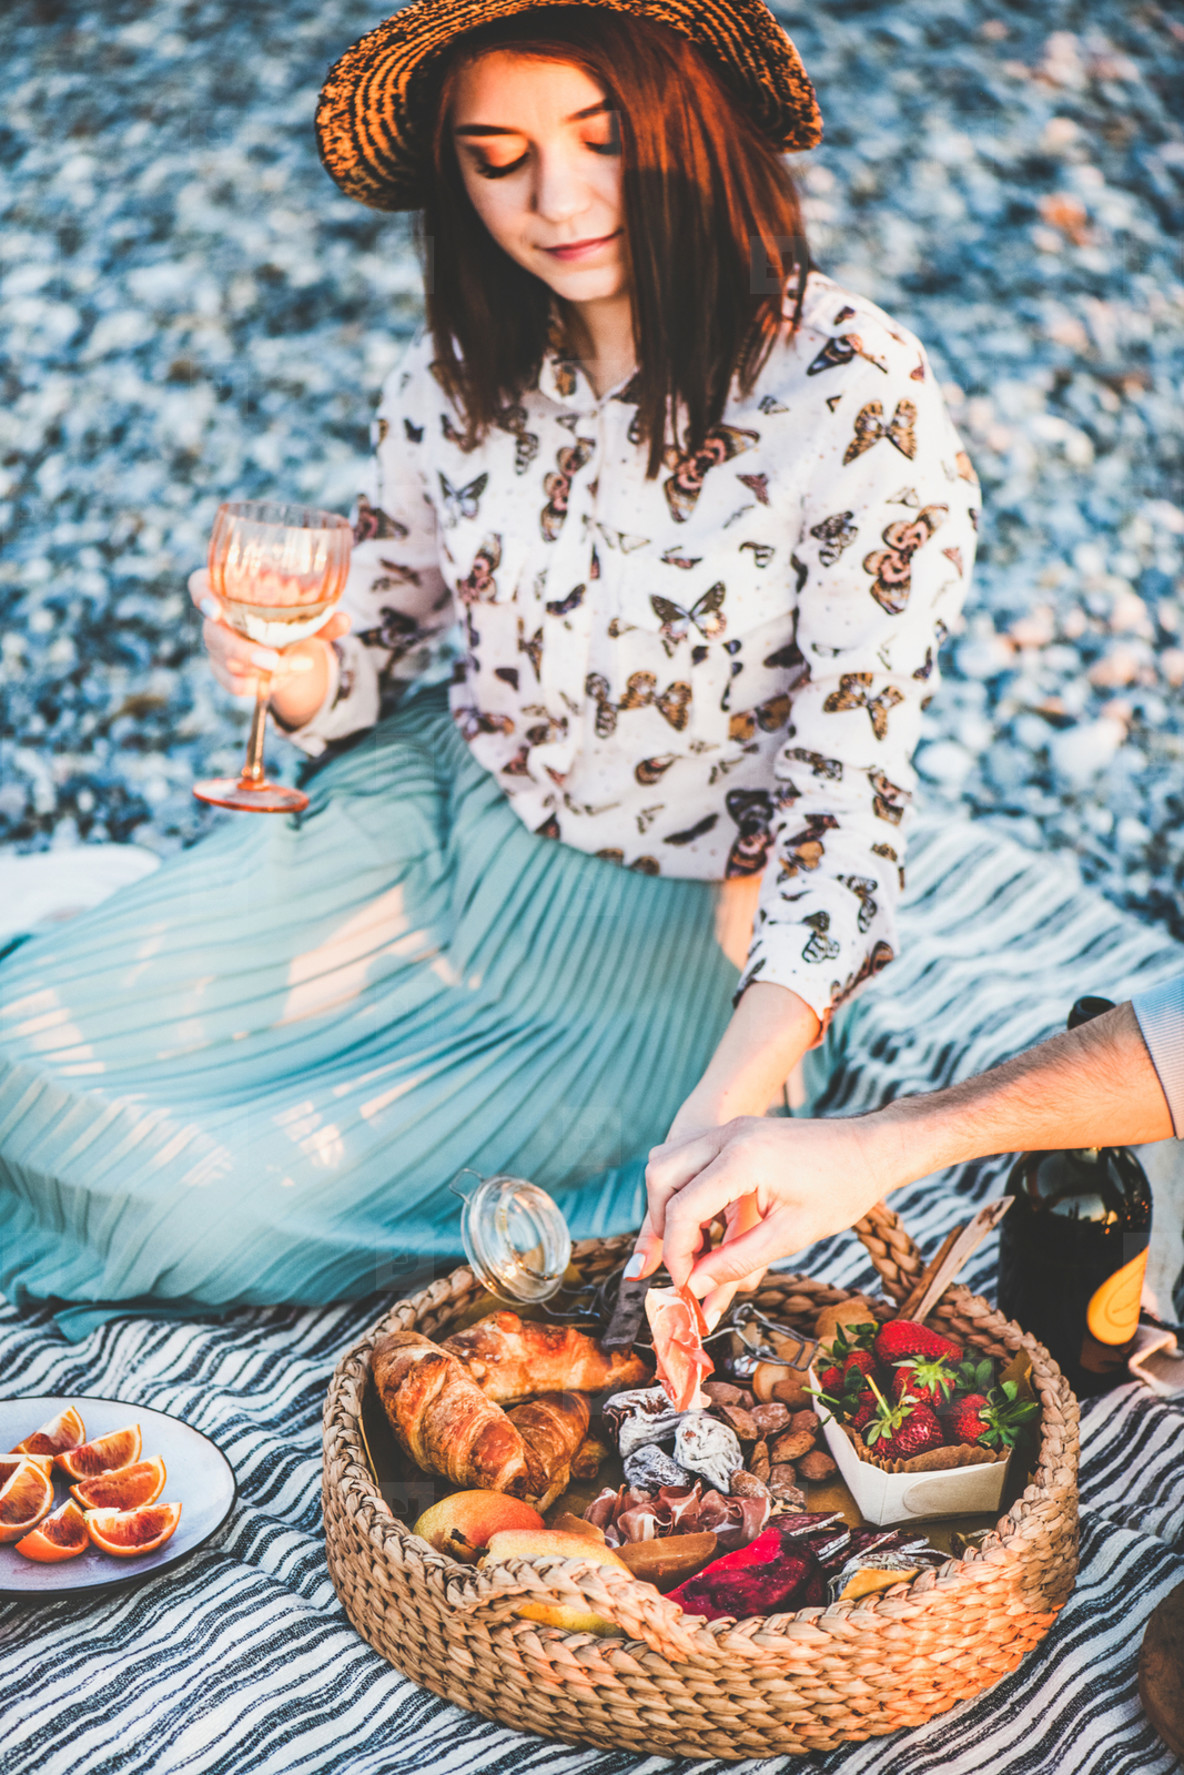 Couple having picnic at seaside with sparklng wine and appetizers